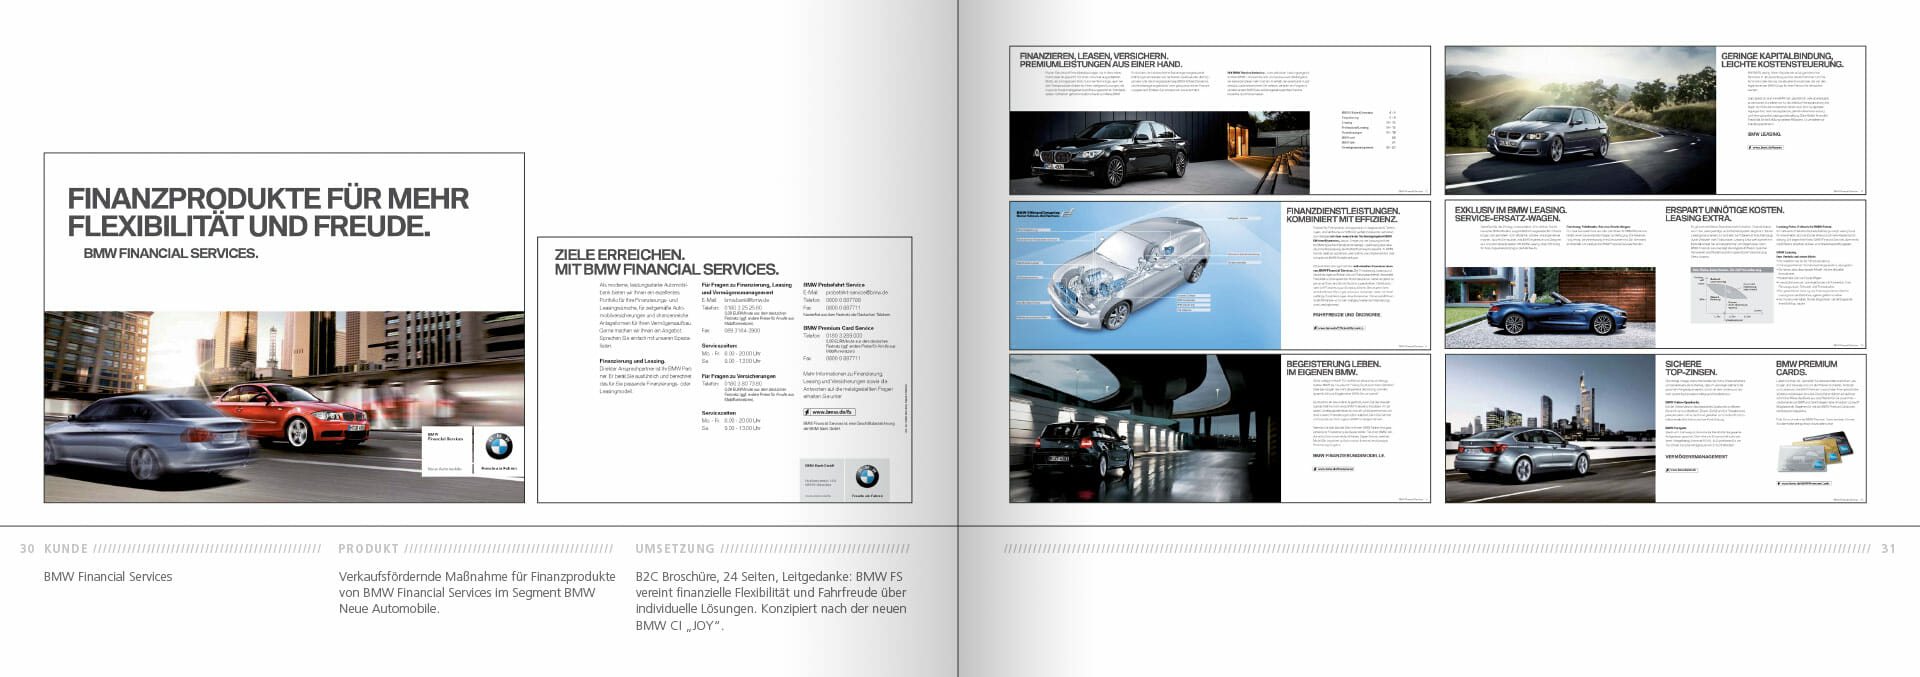 BMW Group Works 2001-2009 Booklet 30-31